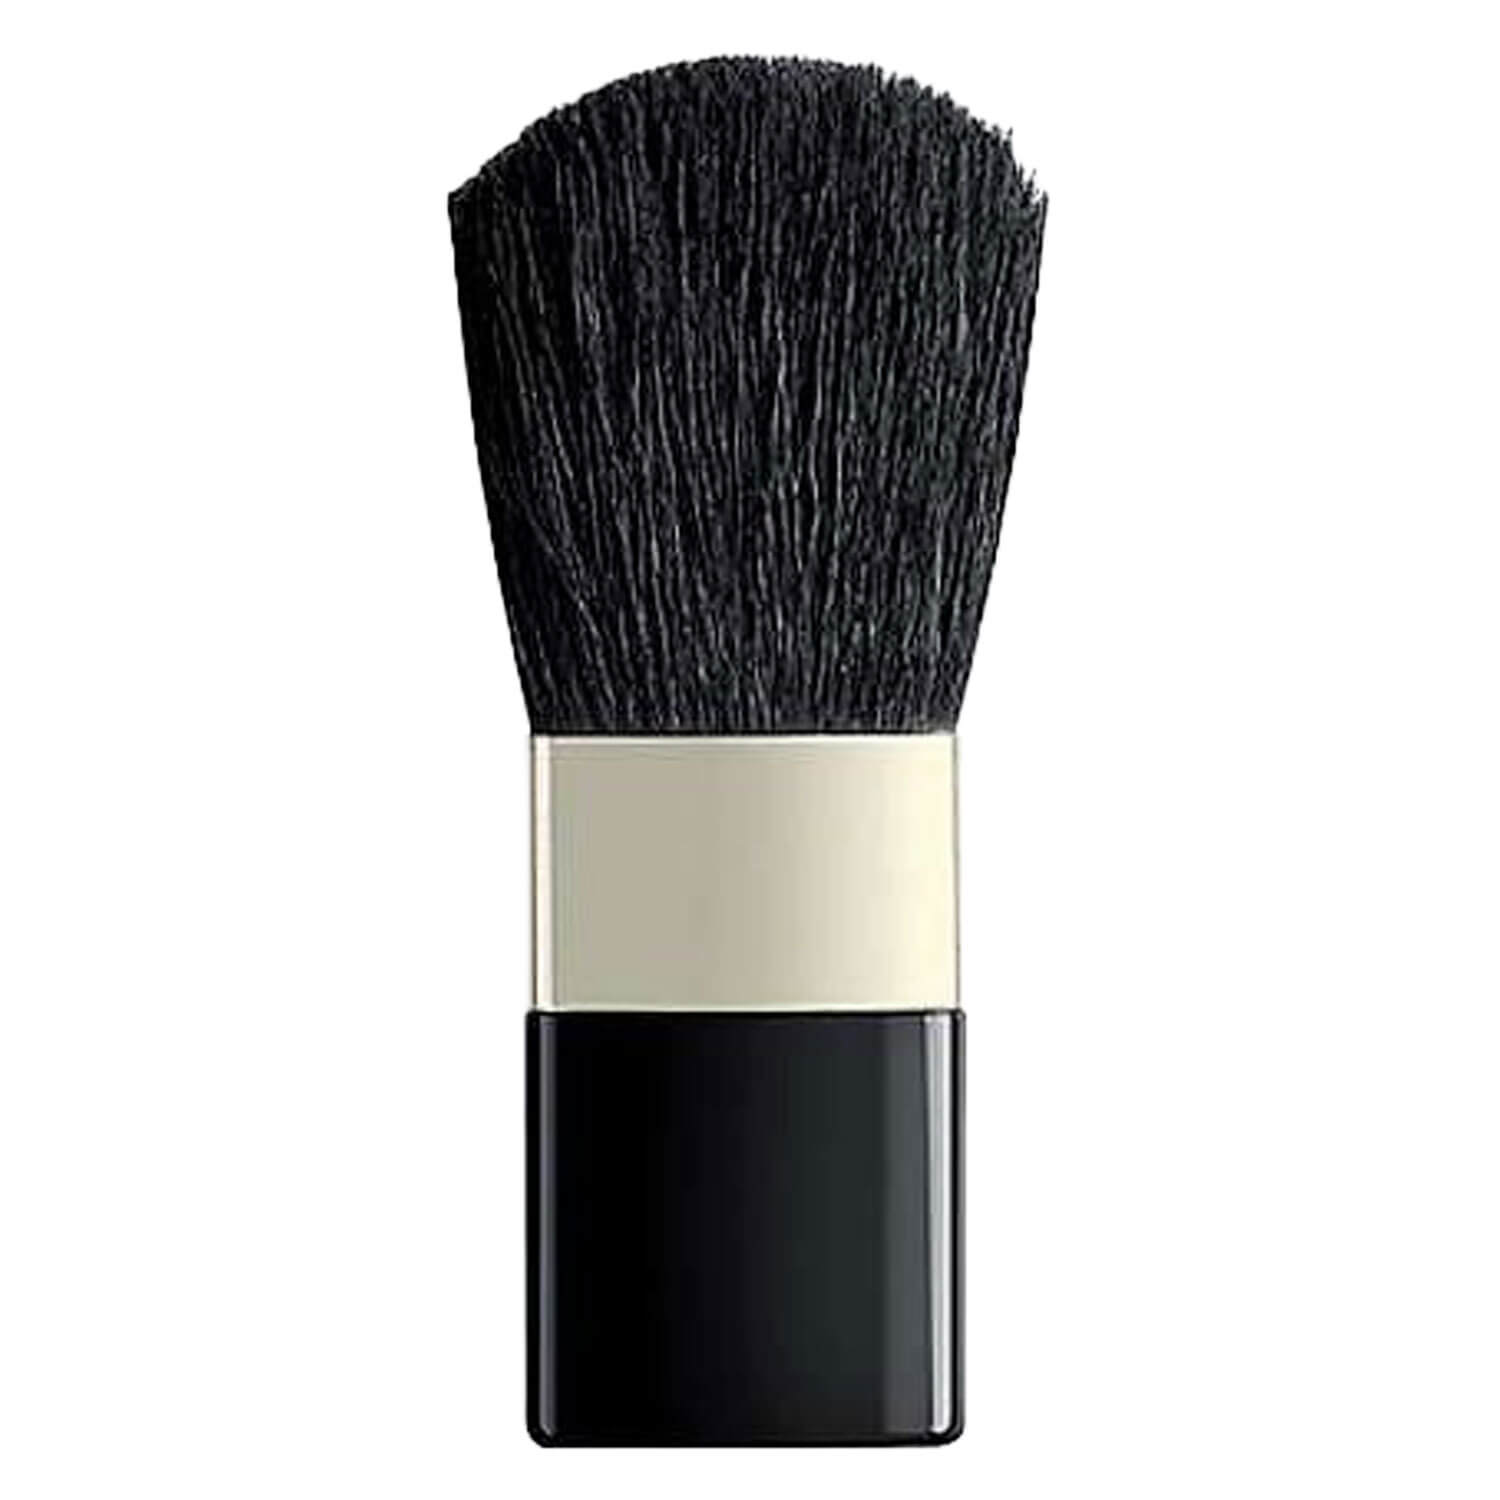 Artdeco Tools - Blusher Brush for Beauty Box